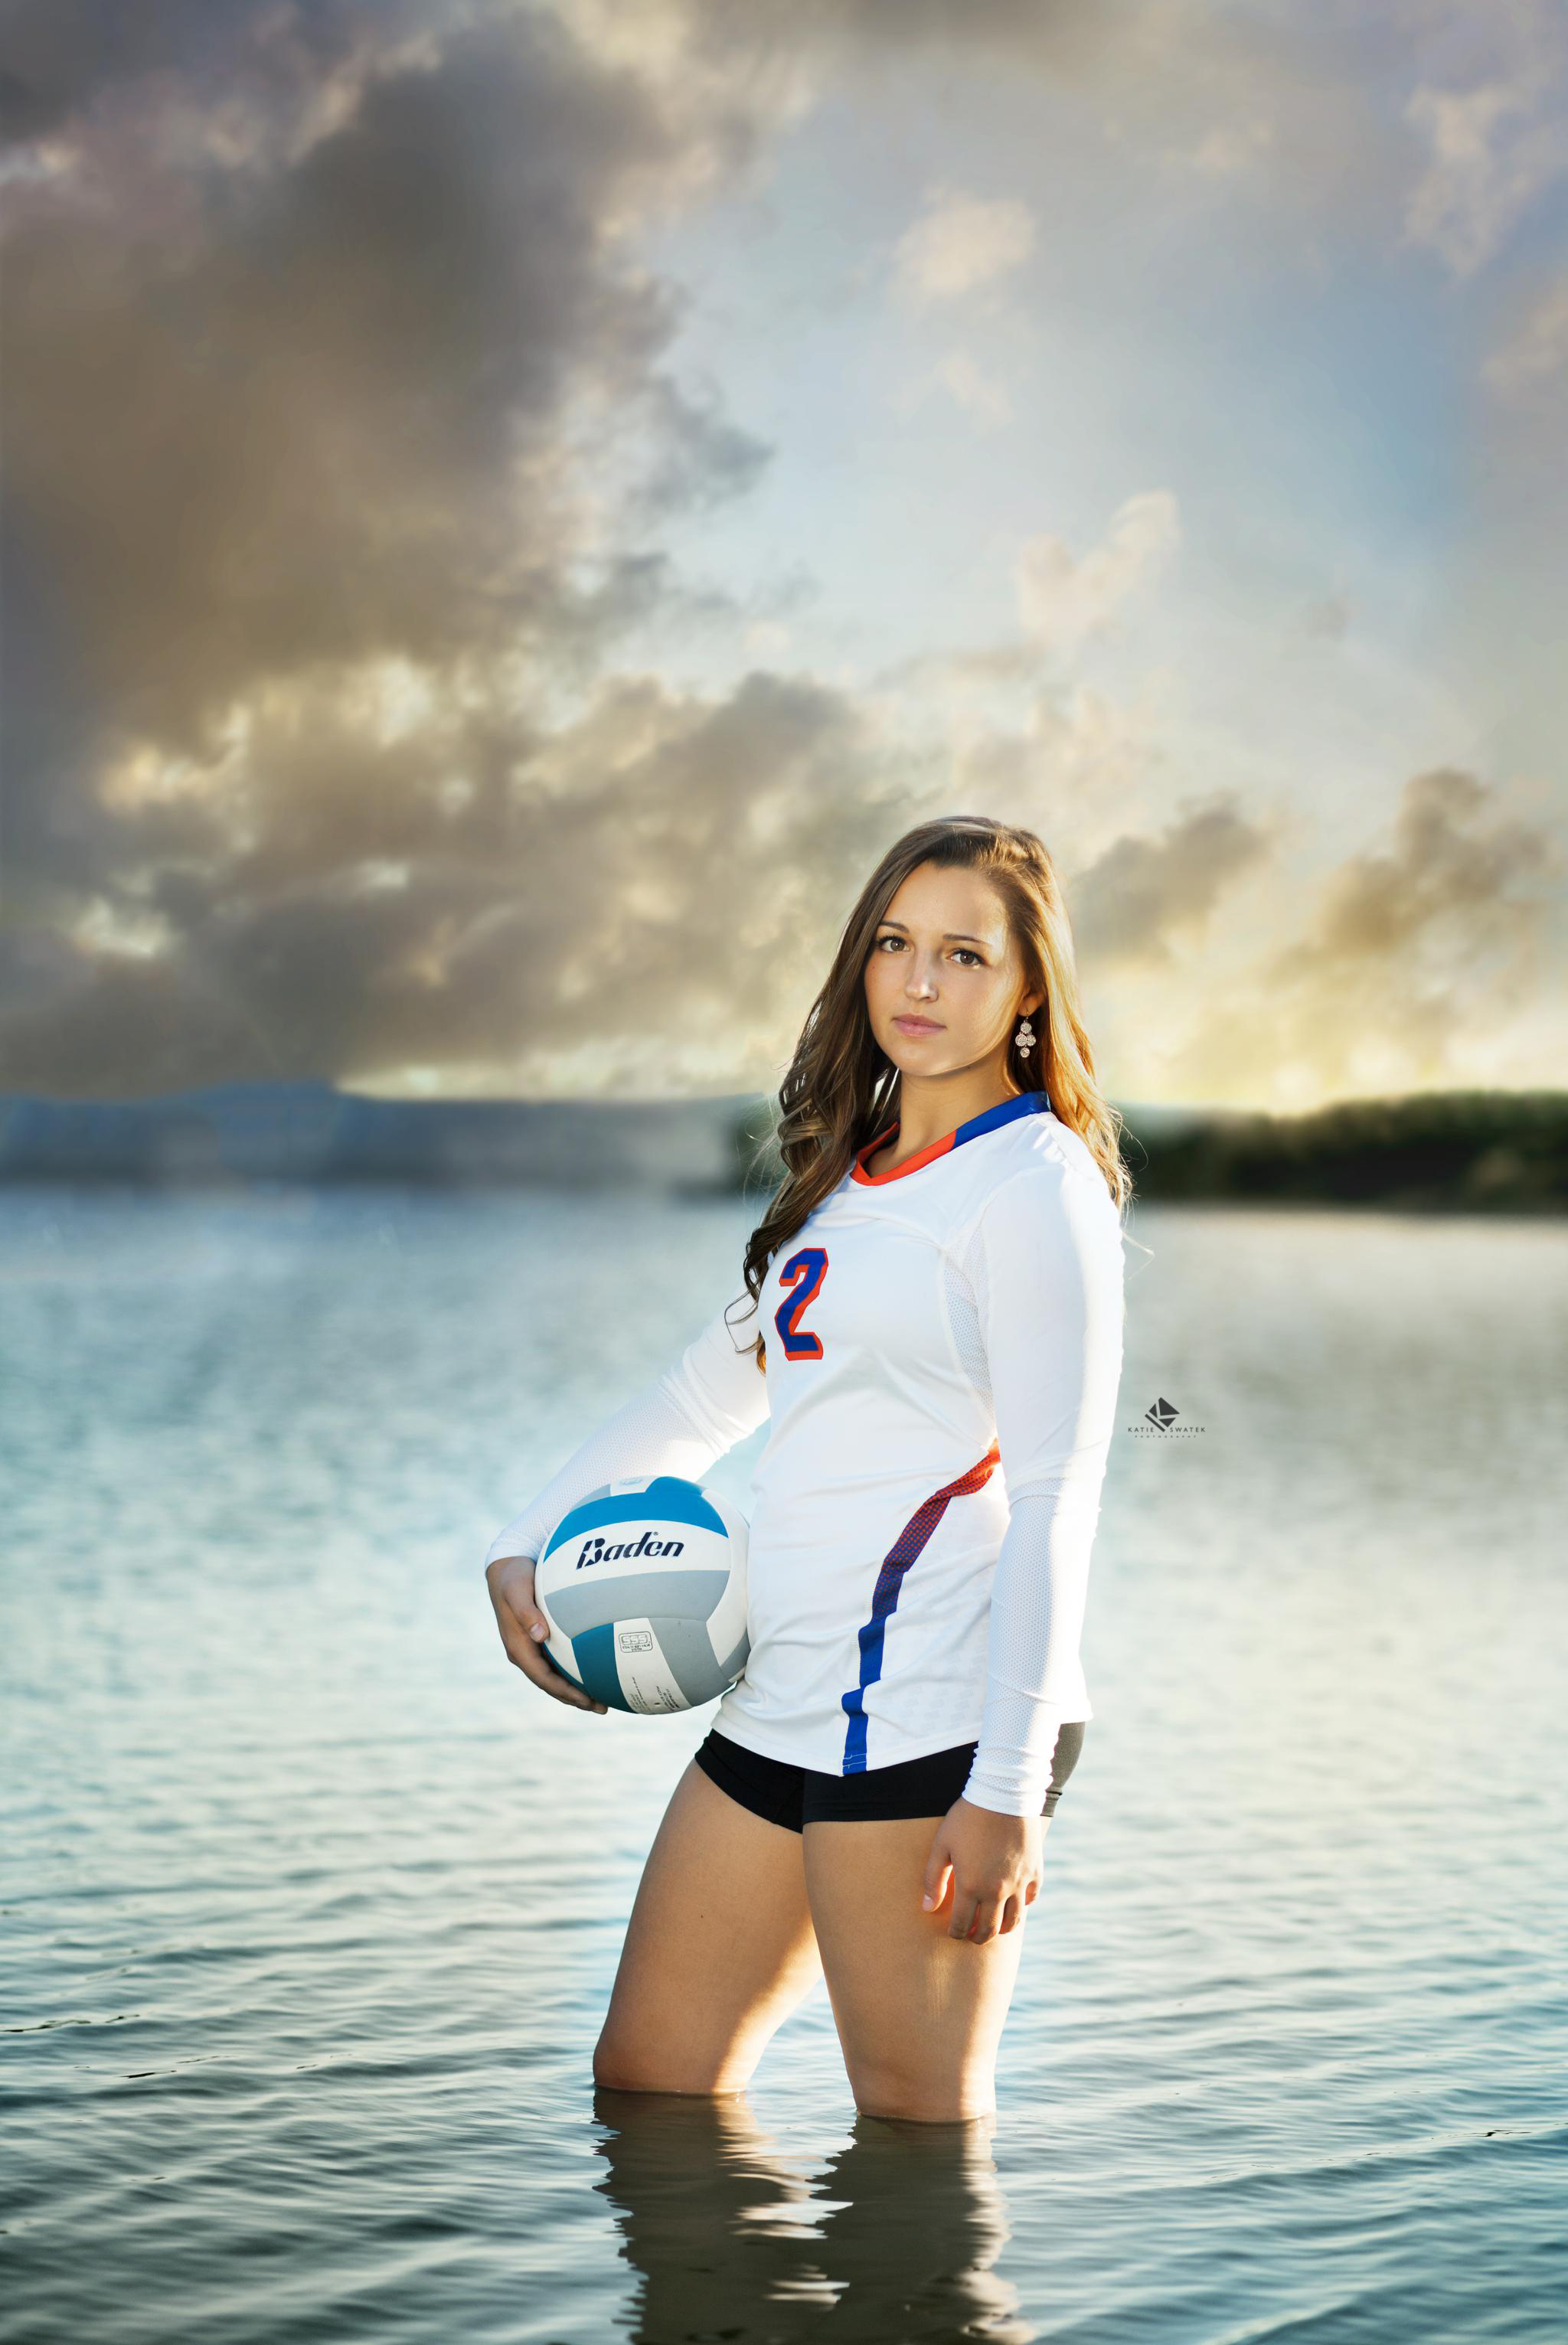 brunette senior girl standing in the lake wearing her volleyball jersey and holding a volleyball